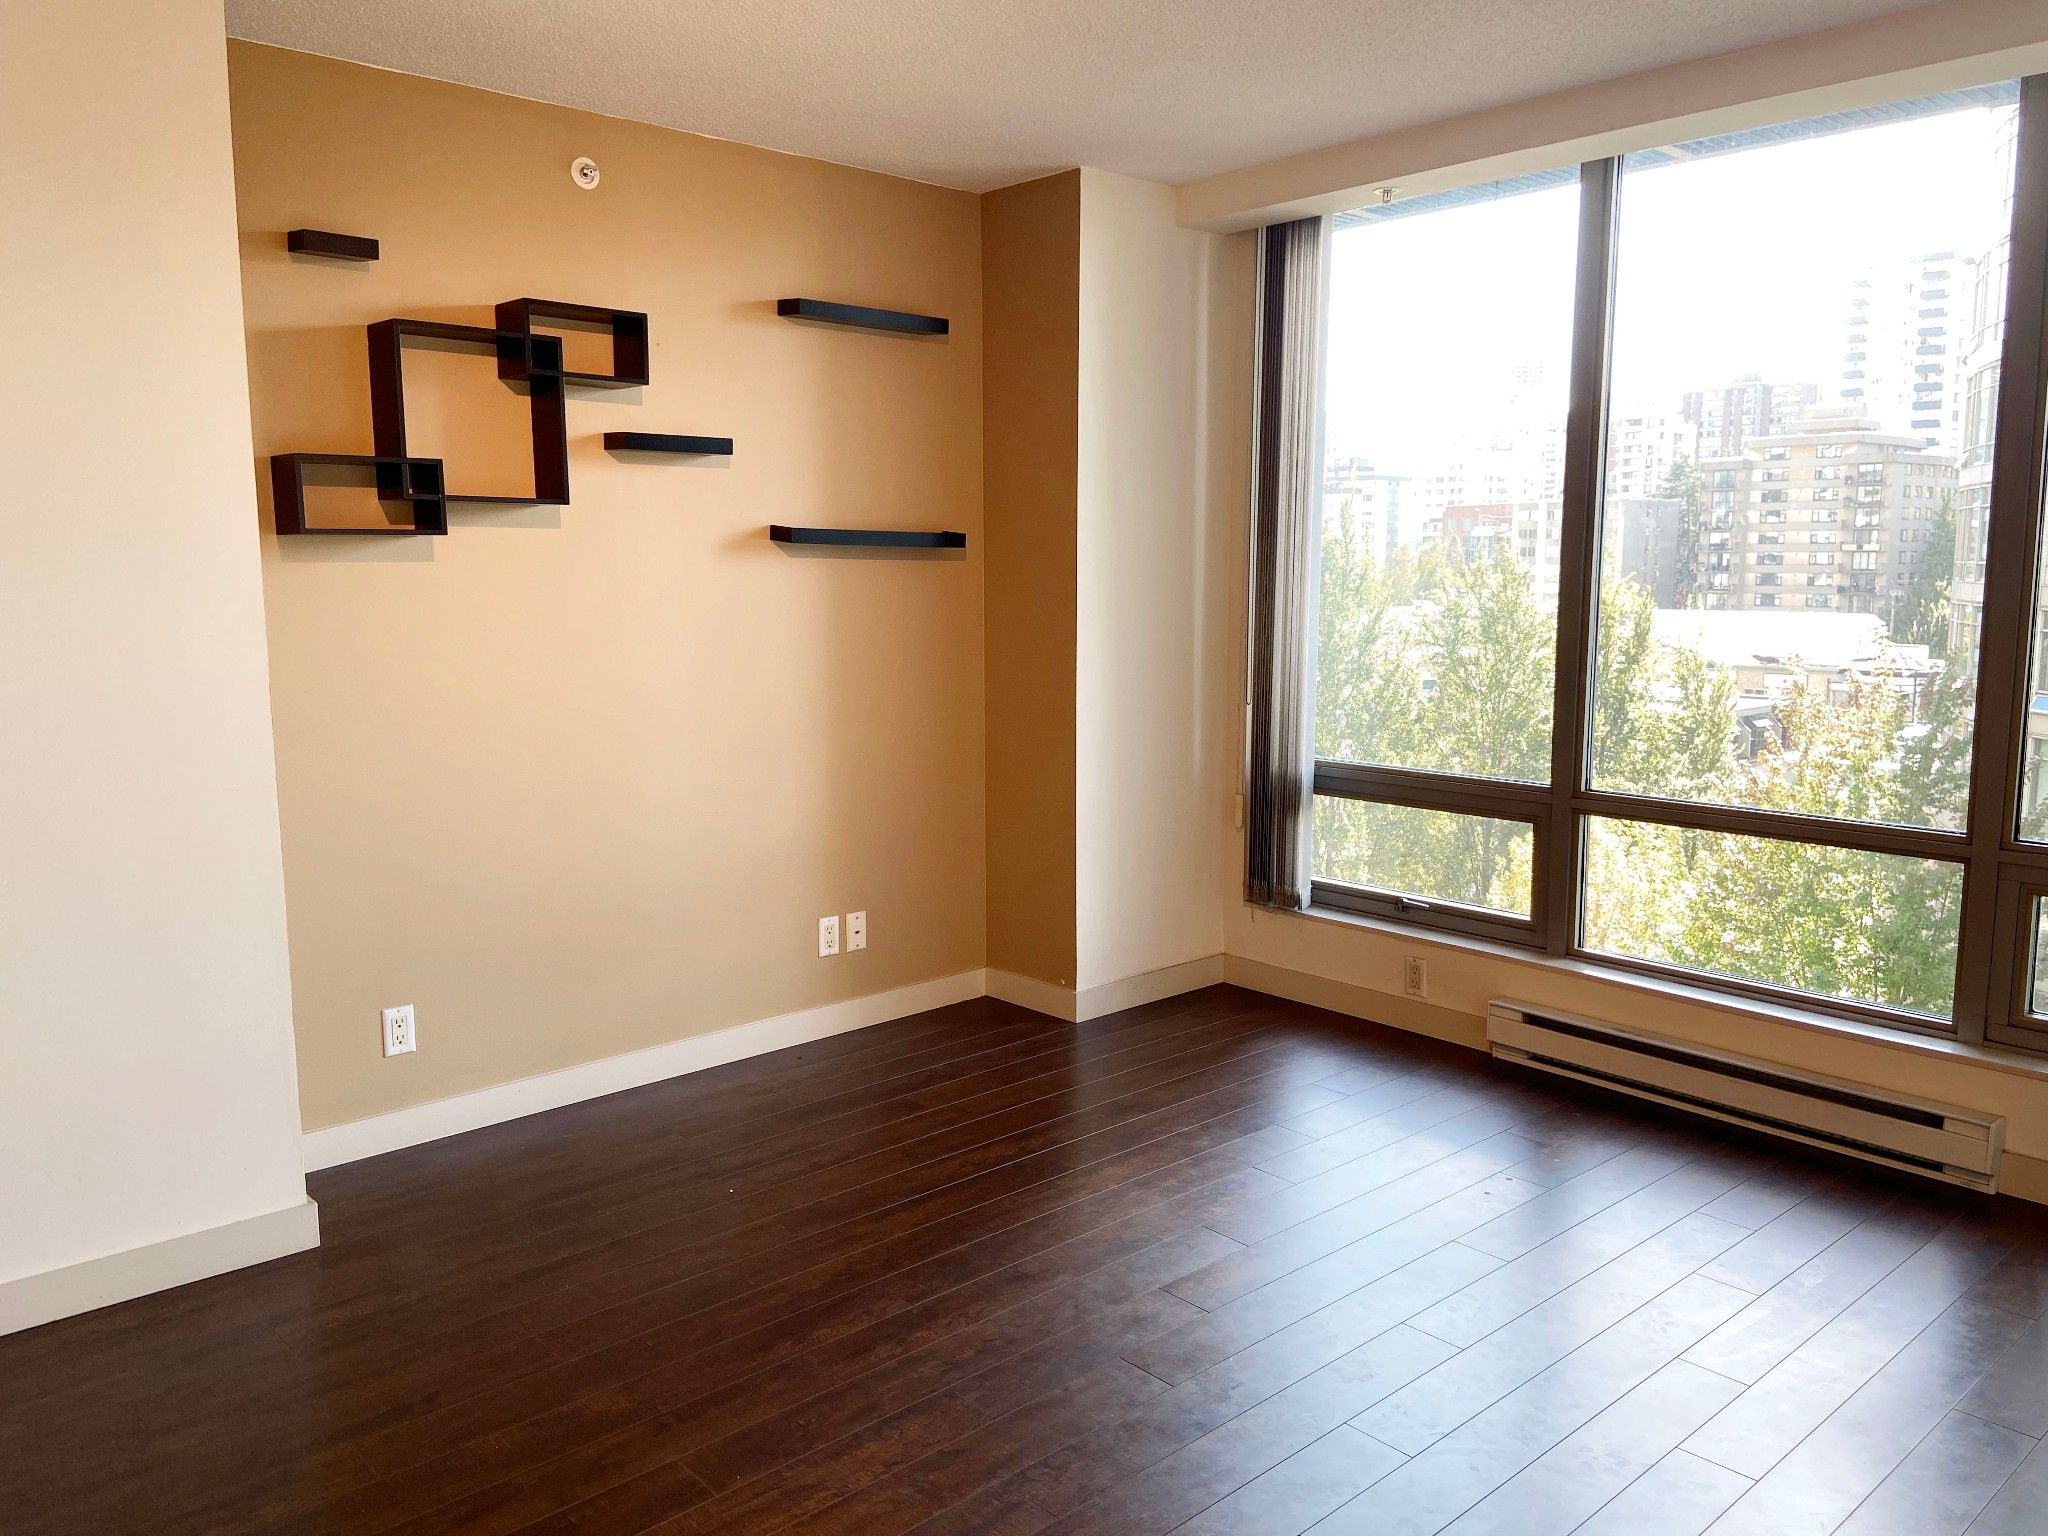 Photo 18: Photos: 1007-1200 W. Georgia St in Vancouver: Coal Harbour Condo for rent (Downtown Vancouver)